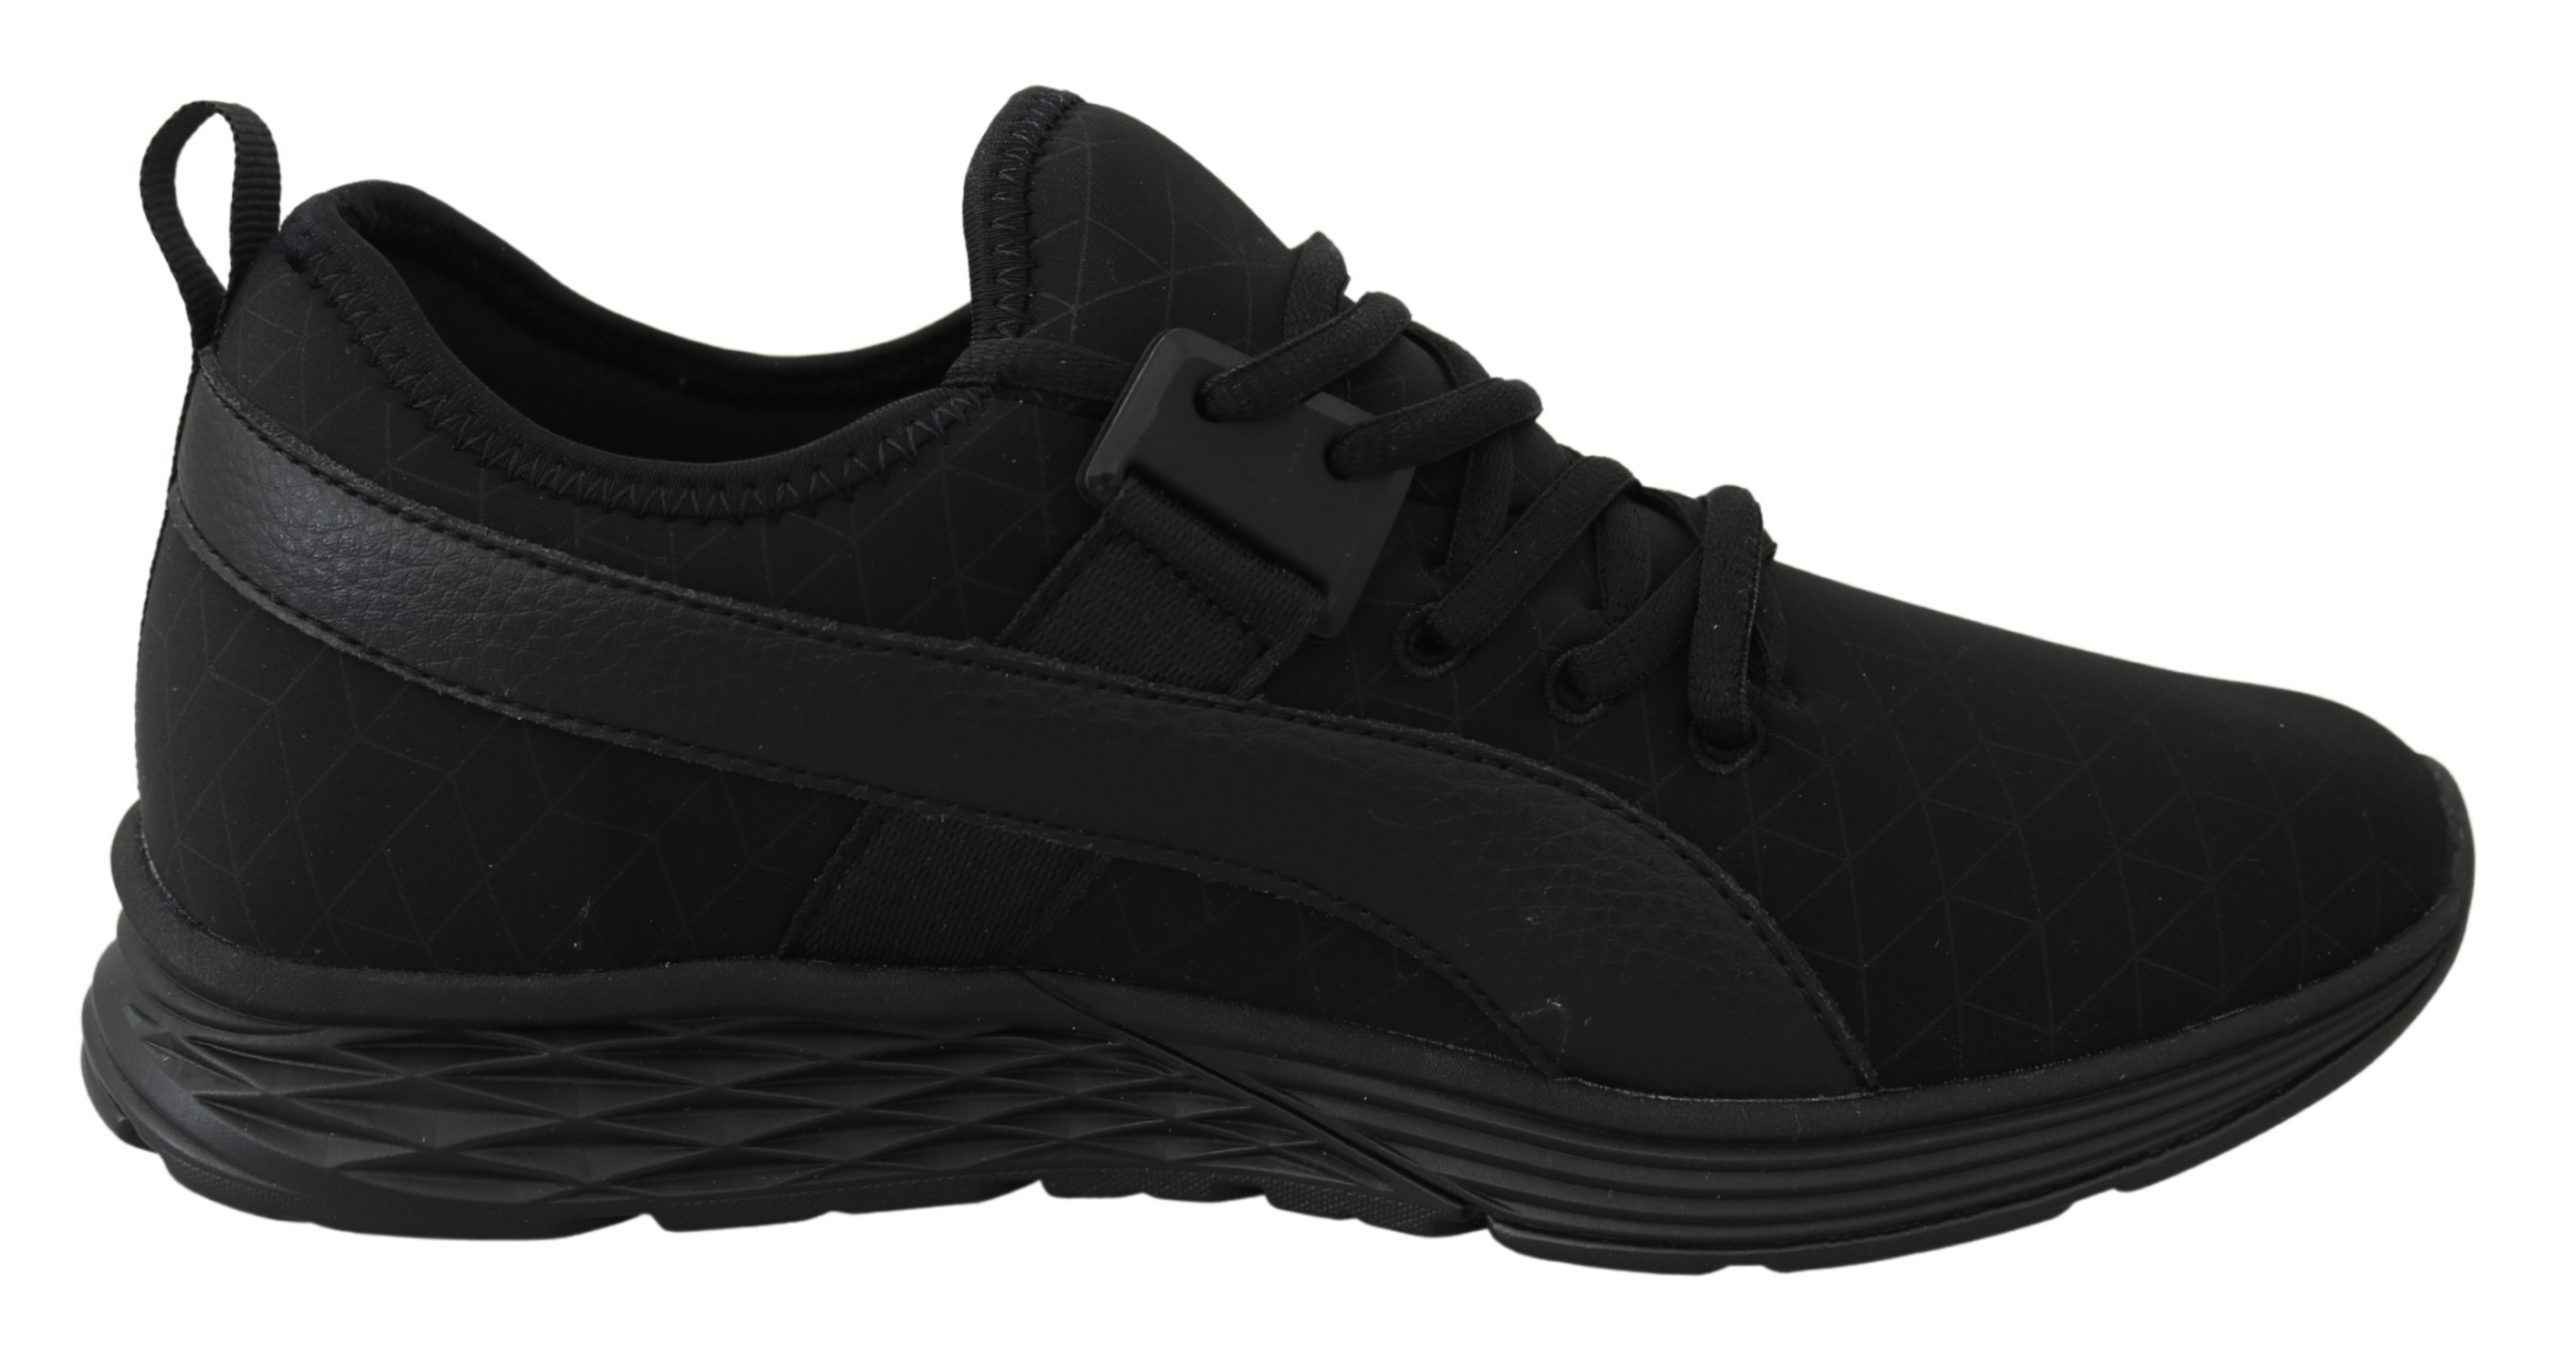 Black Polyester Christopher Sneakers Shoes - EU42/US9